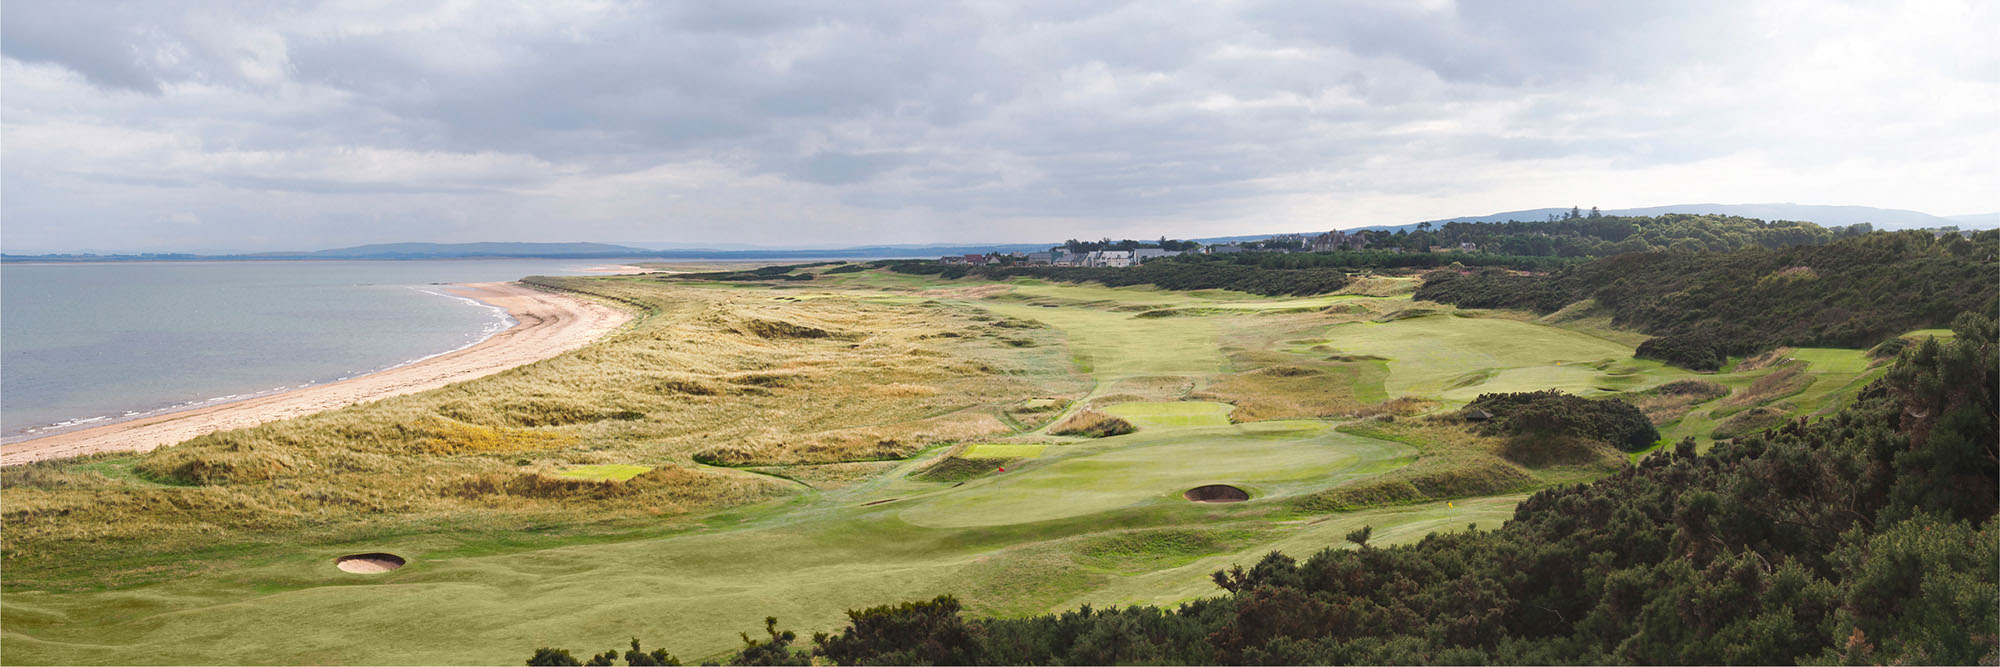 Golf Course Image - Royal Dornoch No. 11